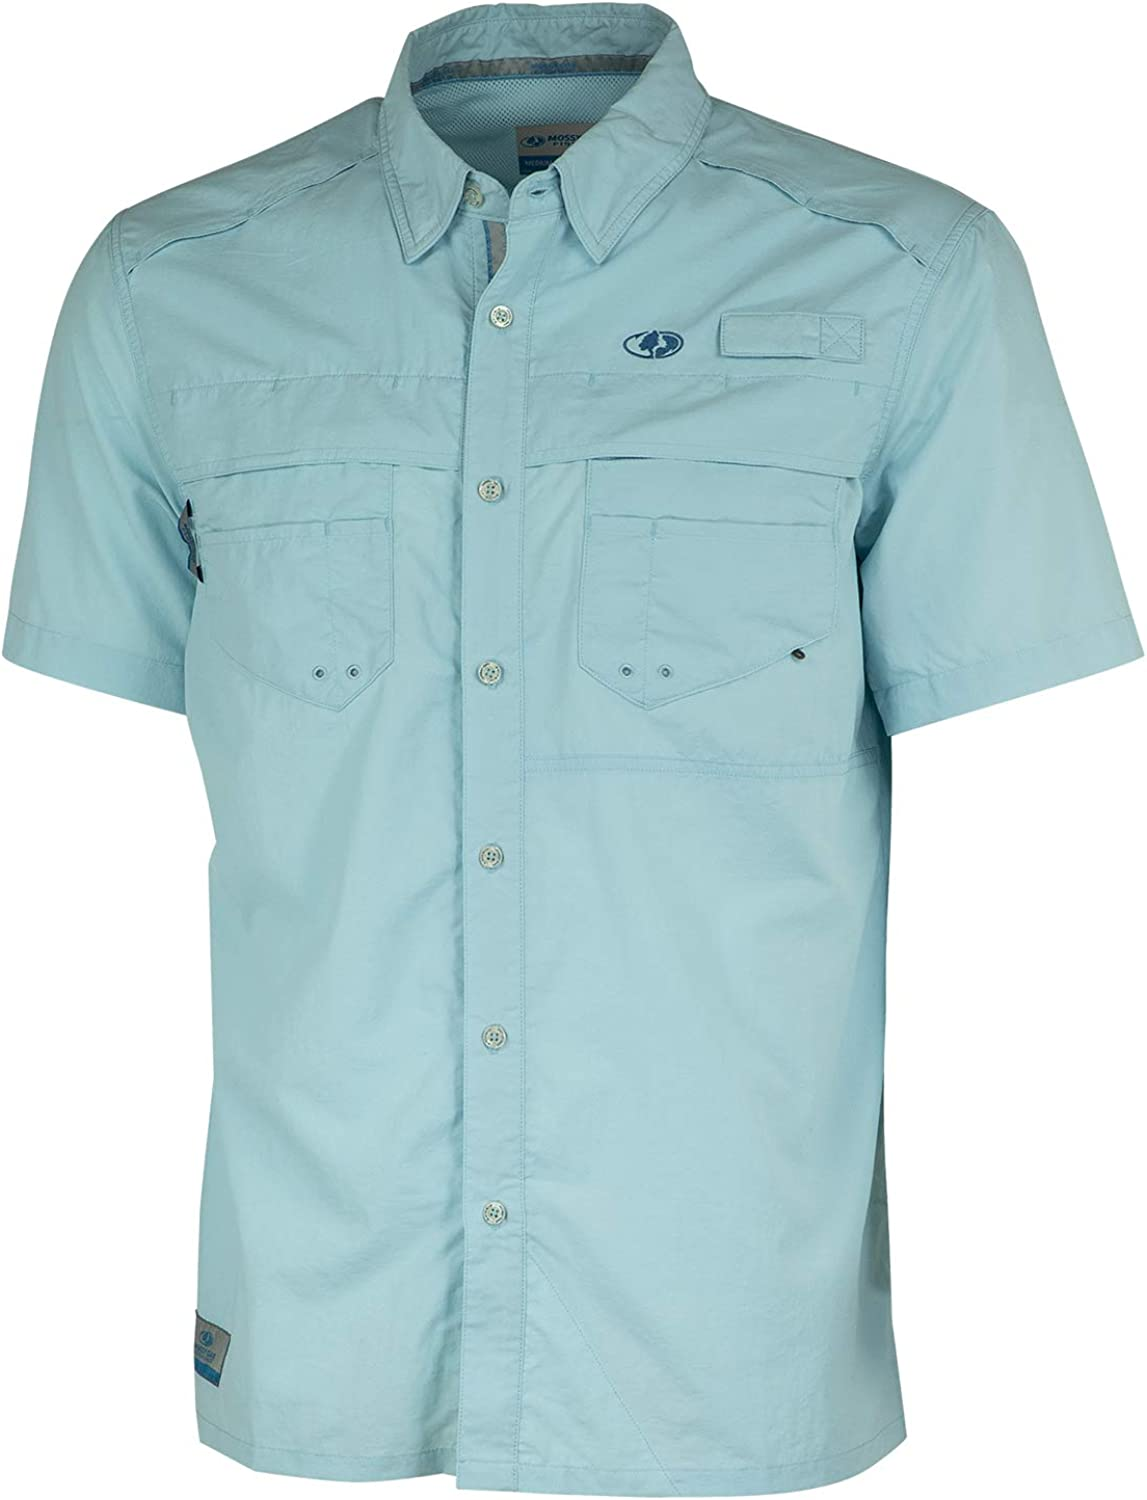 Mossy Award Oak Las Vegas Mall Fishing Shirts for Men Dry Sun with Quick Protect UPF